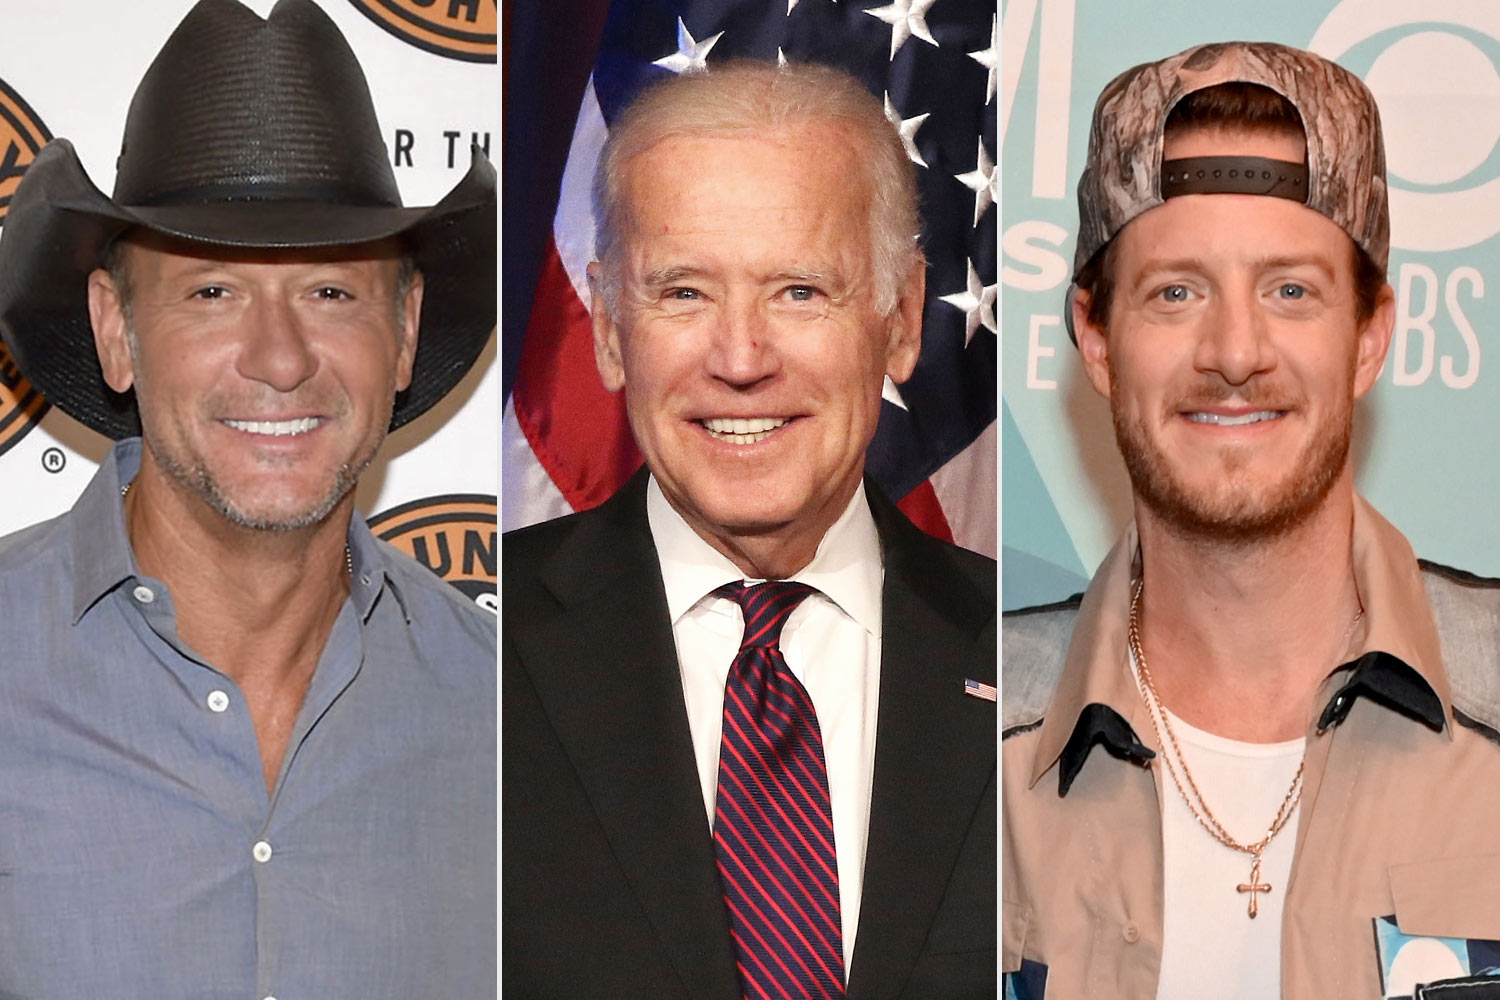 From left: Tim McGraw, Joe Biden and Tyler Hubbard